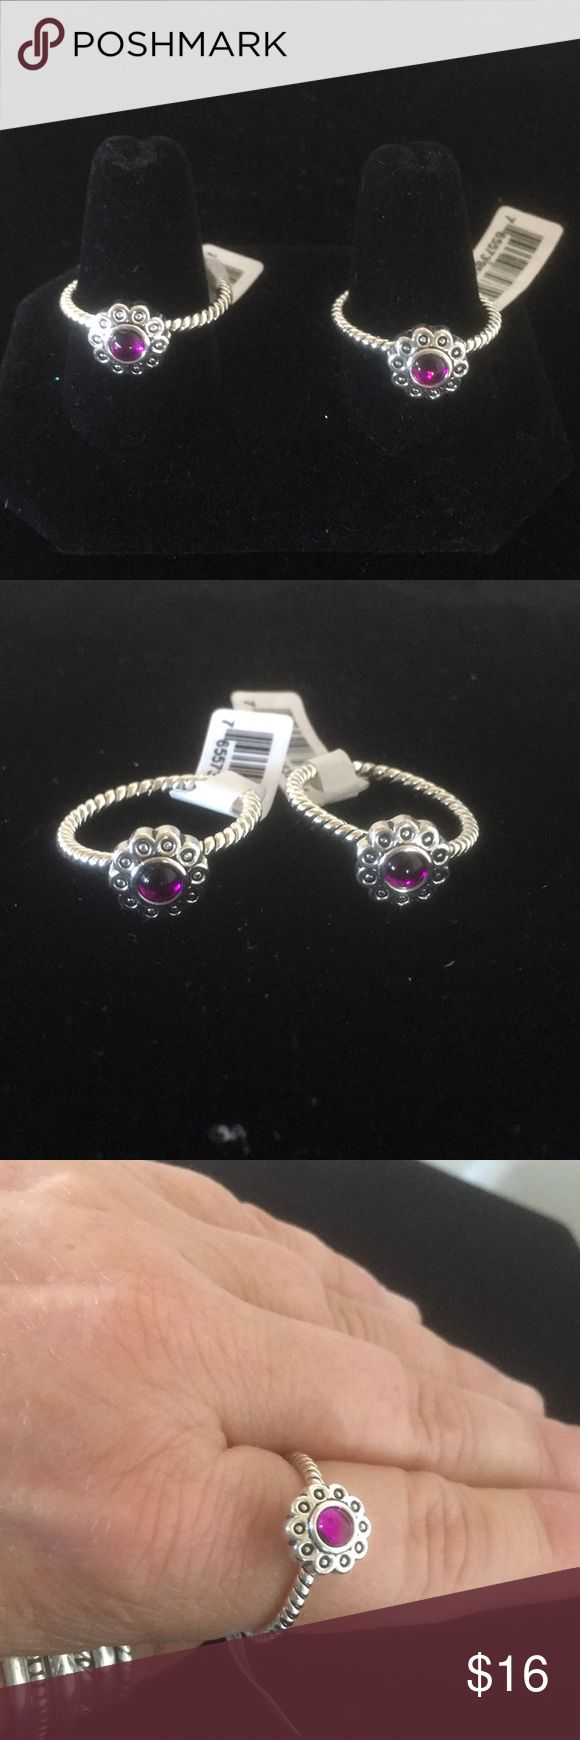 Purple Flower Ring- Size 9 Gorgeous silver plated ring with purple flower. Dainty in its simplicity but beautiful! I have 2 in stock and price reflects the price for 1 ring. Both are Size 9. (Bundles of 2 or more items saves you 10%!) Jewelry Rings